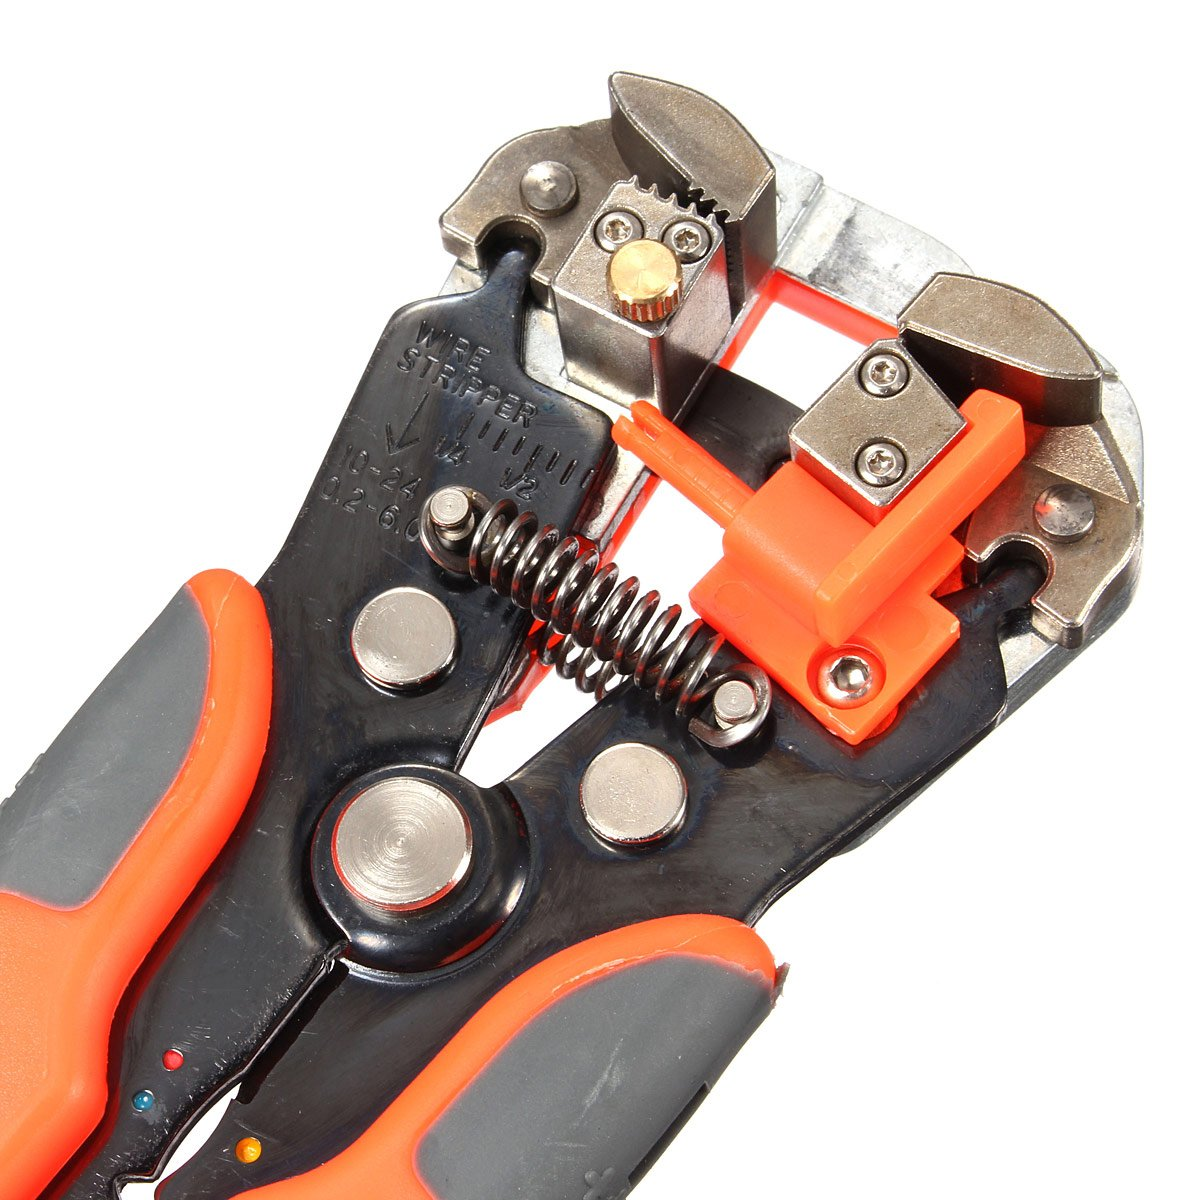 Agile-shop Professional Multifunction Automatic Wire Cutter Stripper Crimper Pliers Terminal Tool by Agile-shop (Image #5)